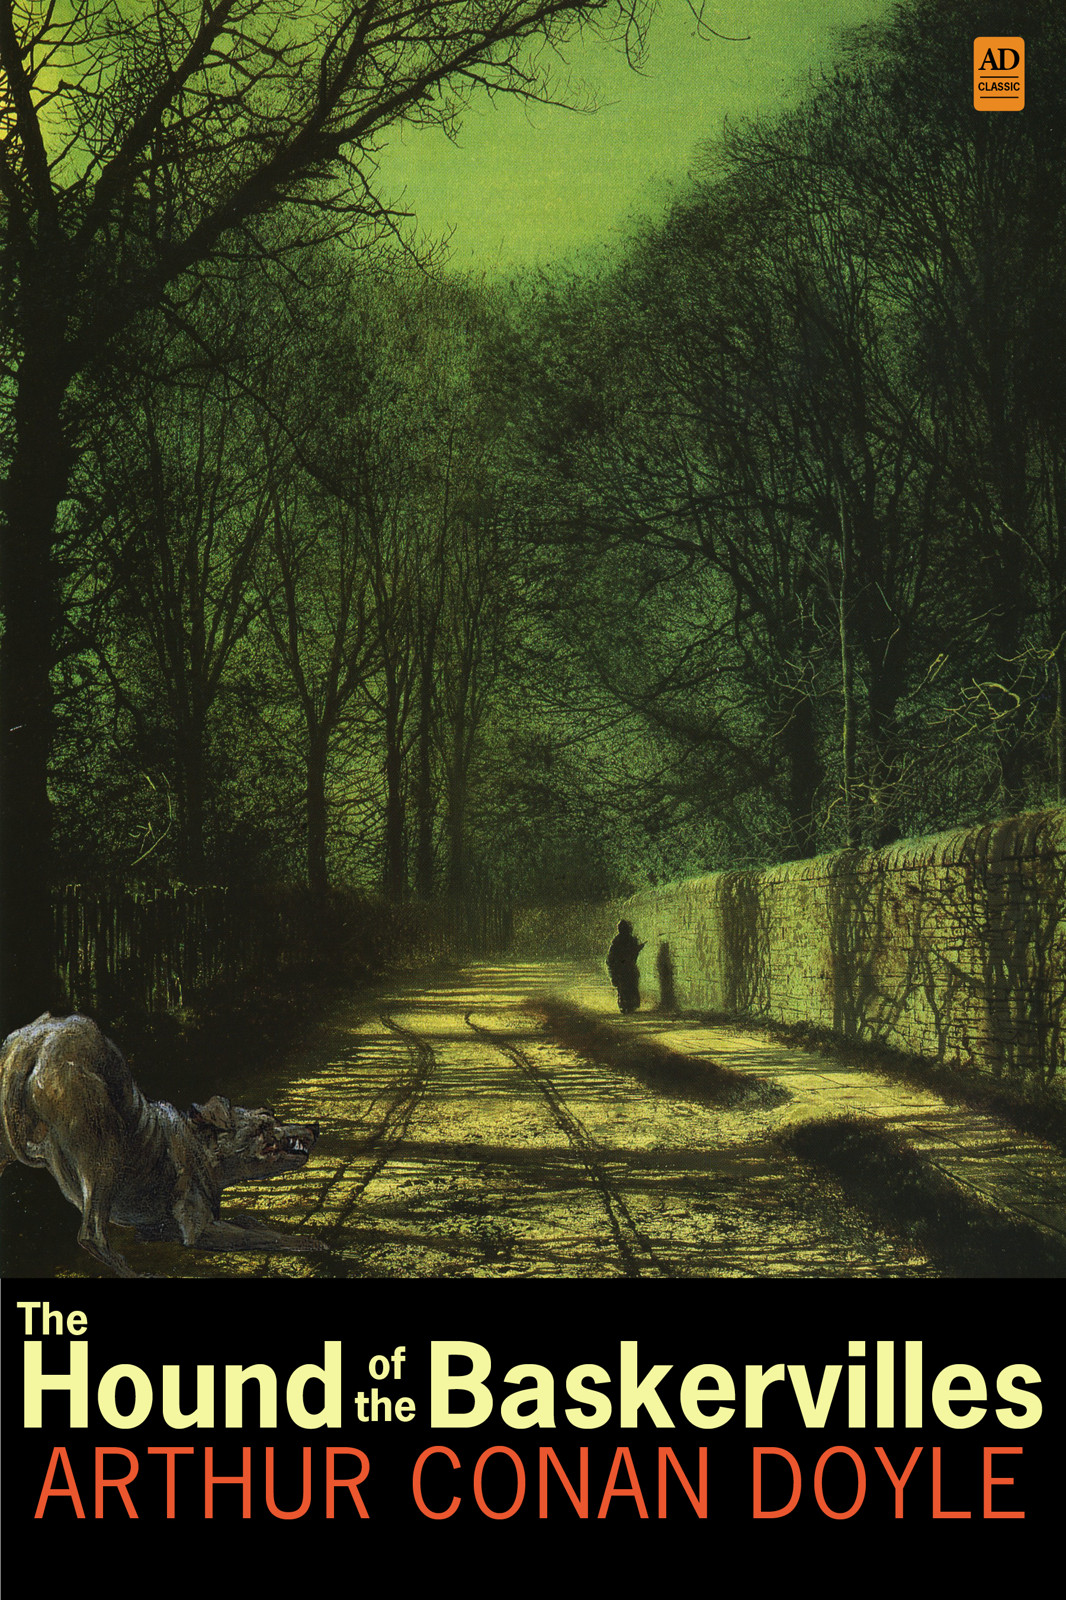 Sherlock Holmes: The Hound of the Baskervilles (AD Classic Illustrated) By: Sir Arthur Conan Doyle, Sidney Paget